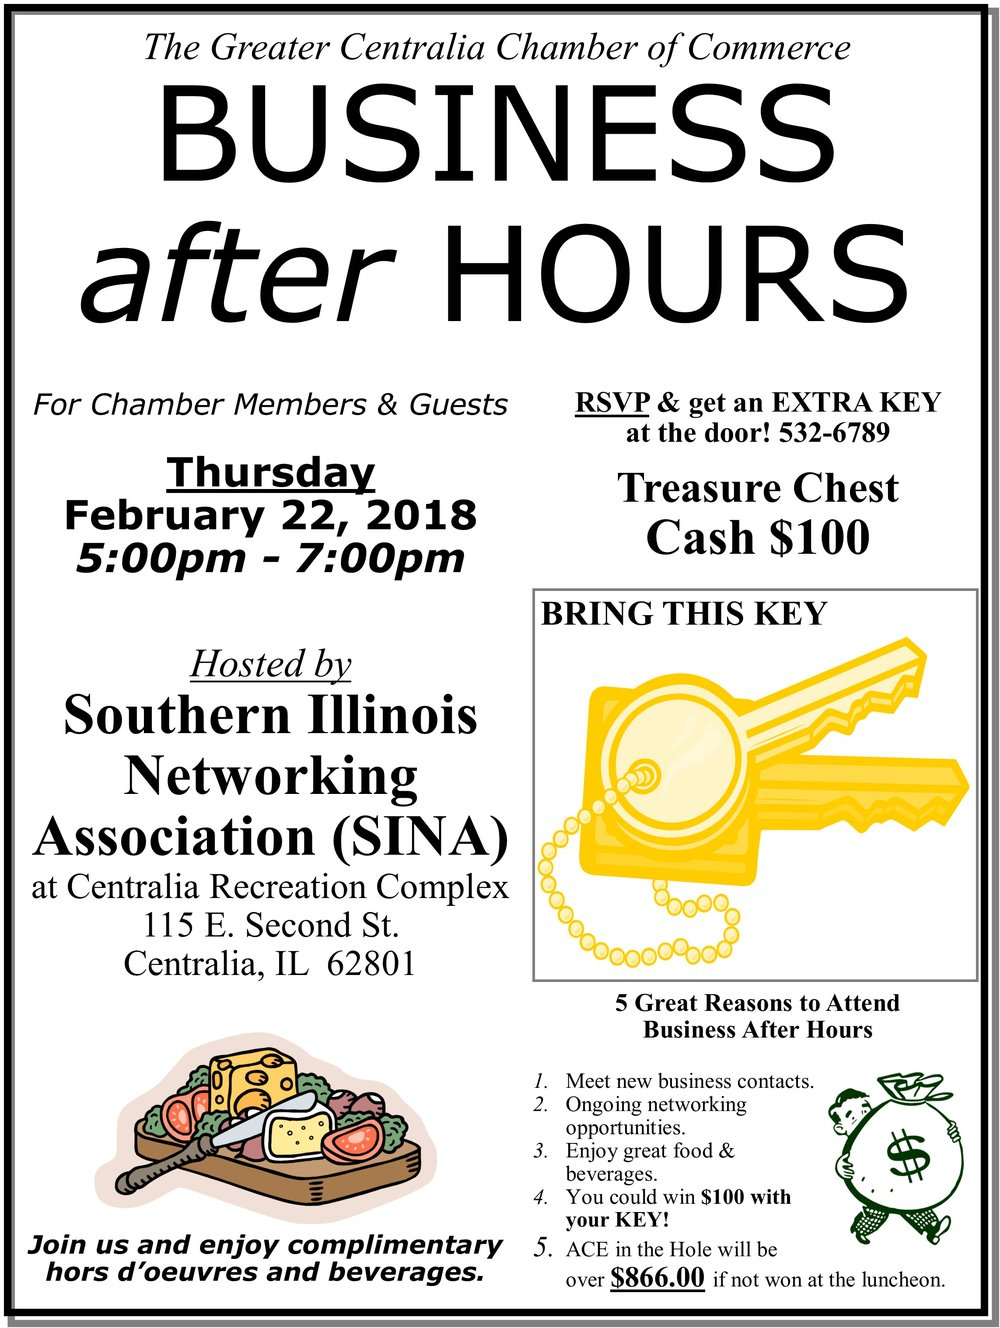 BUSINESS AFTER HOURS FLYER Feb 2018.jpg